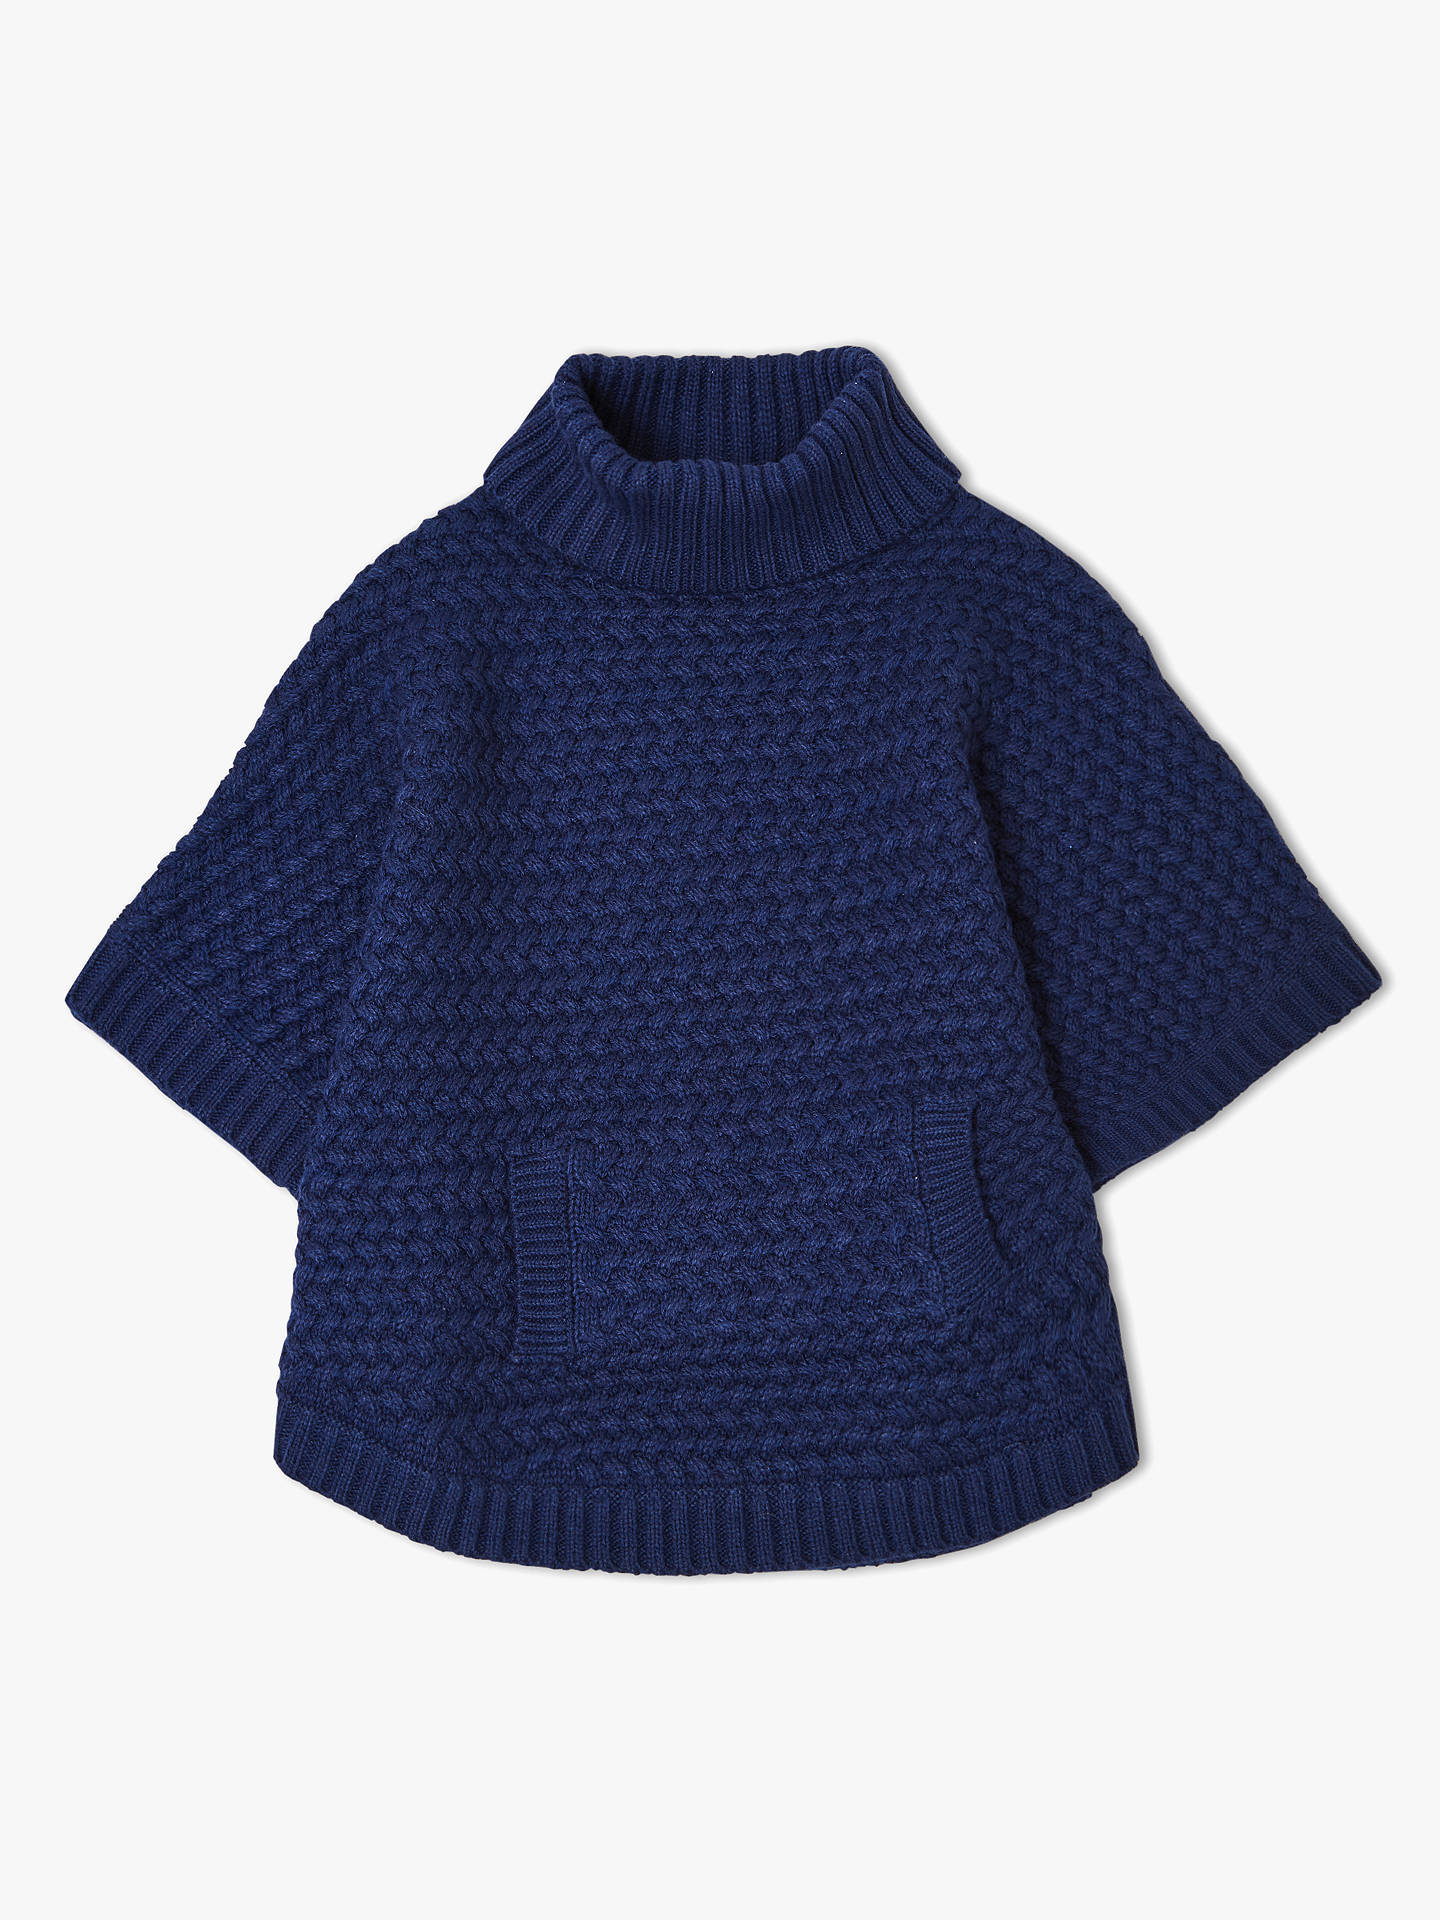 BuyJohn Lewis & Partners Girls' Knitted Poncho, Navy, 3-4 years Online at johnlewis.com